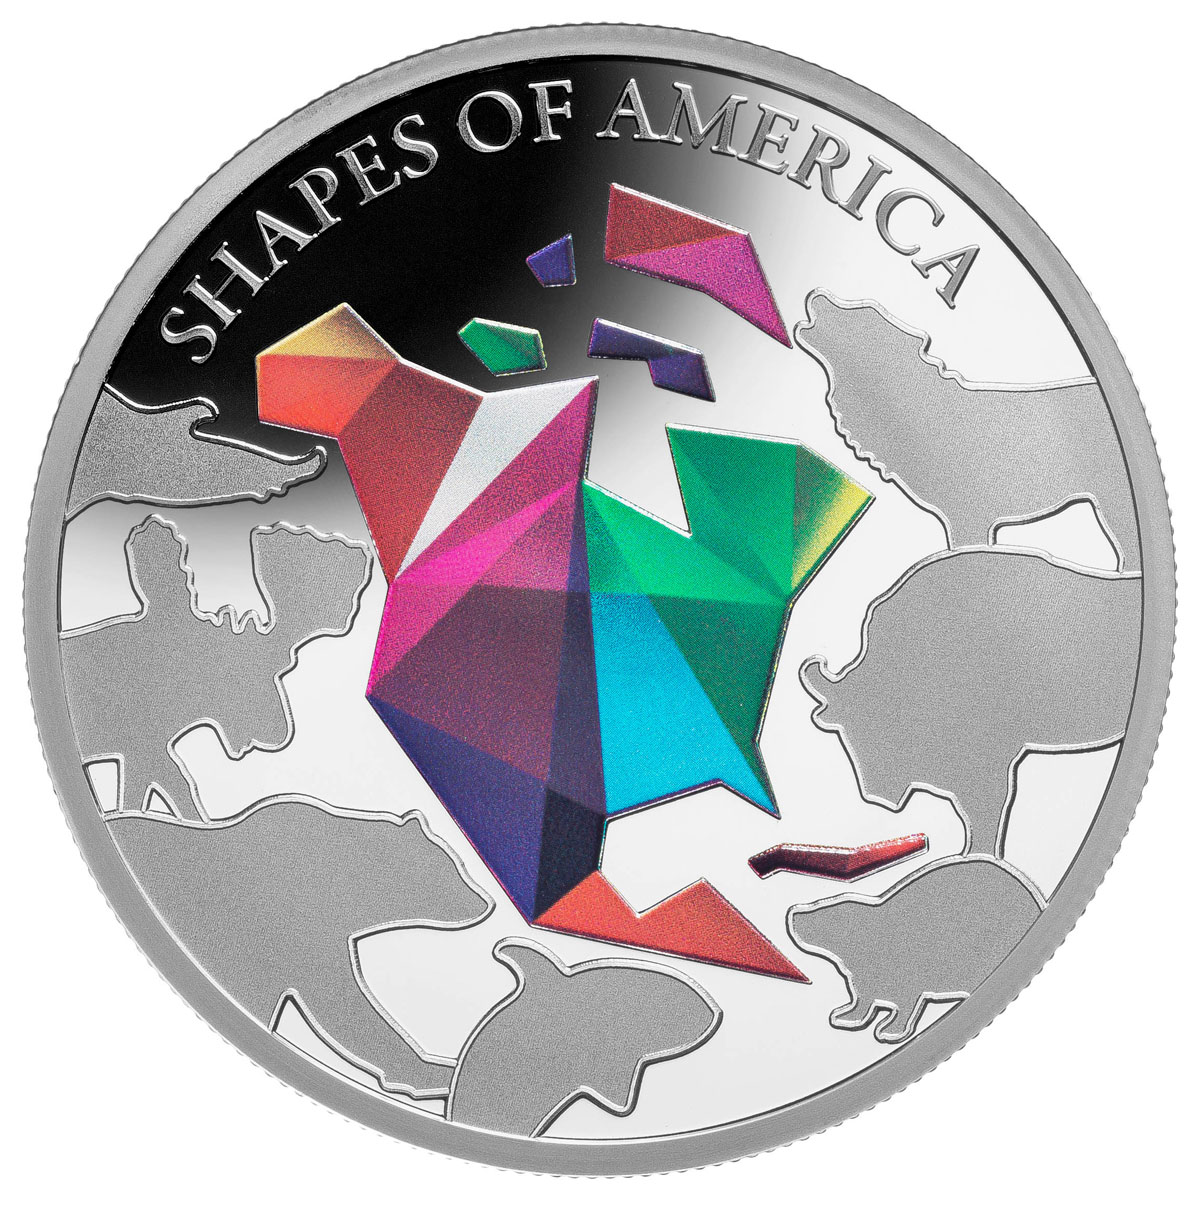 2020 Barbados Shapes of America - Cut-Out High Relief 1 oz Proof-Like Silver $5 Coin Colorized